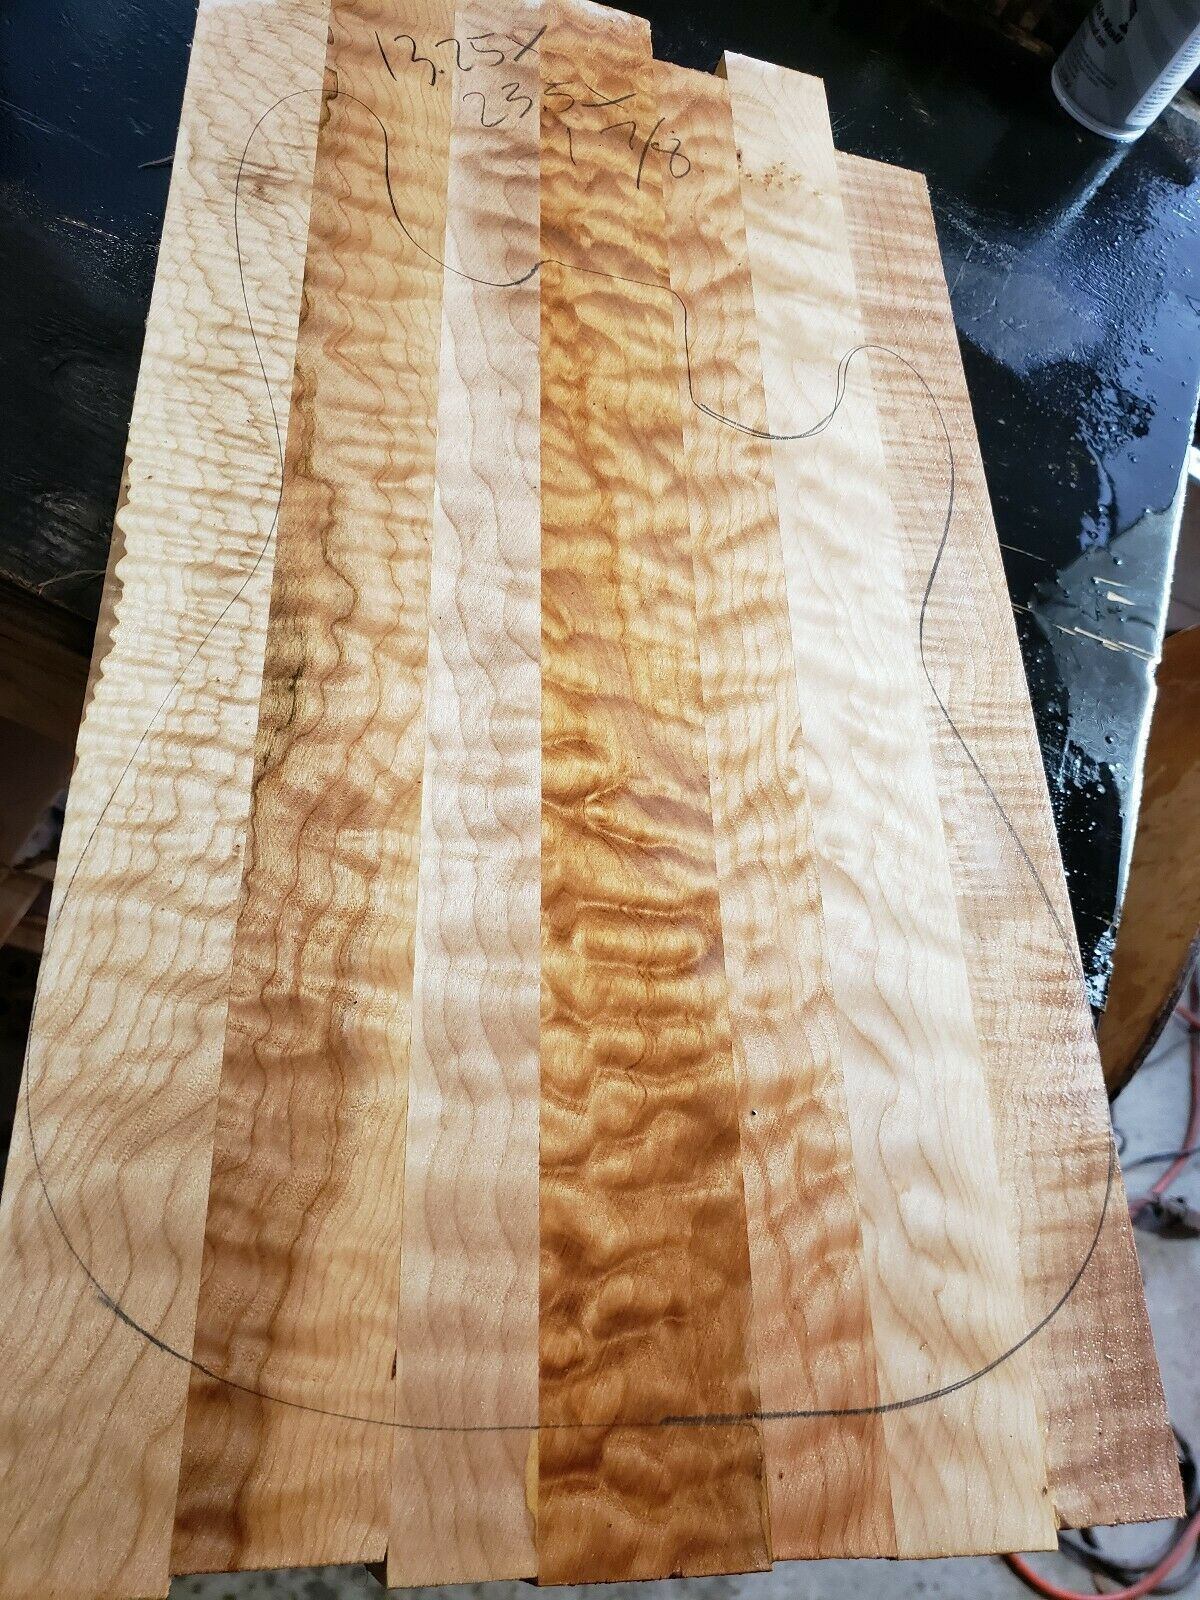 Quilted maple 5a GUITAR or BASS lumber. Exotic wood solid body for luthier.